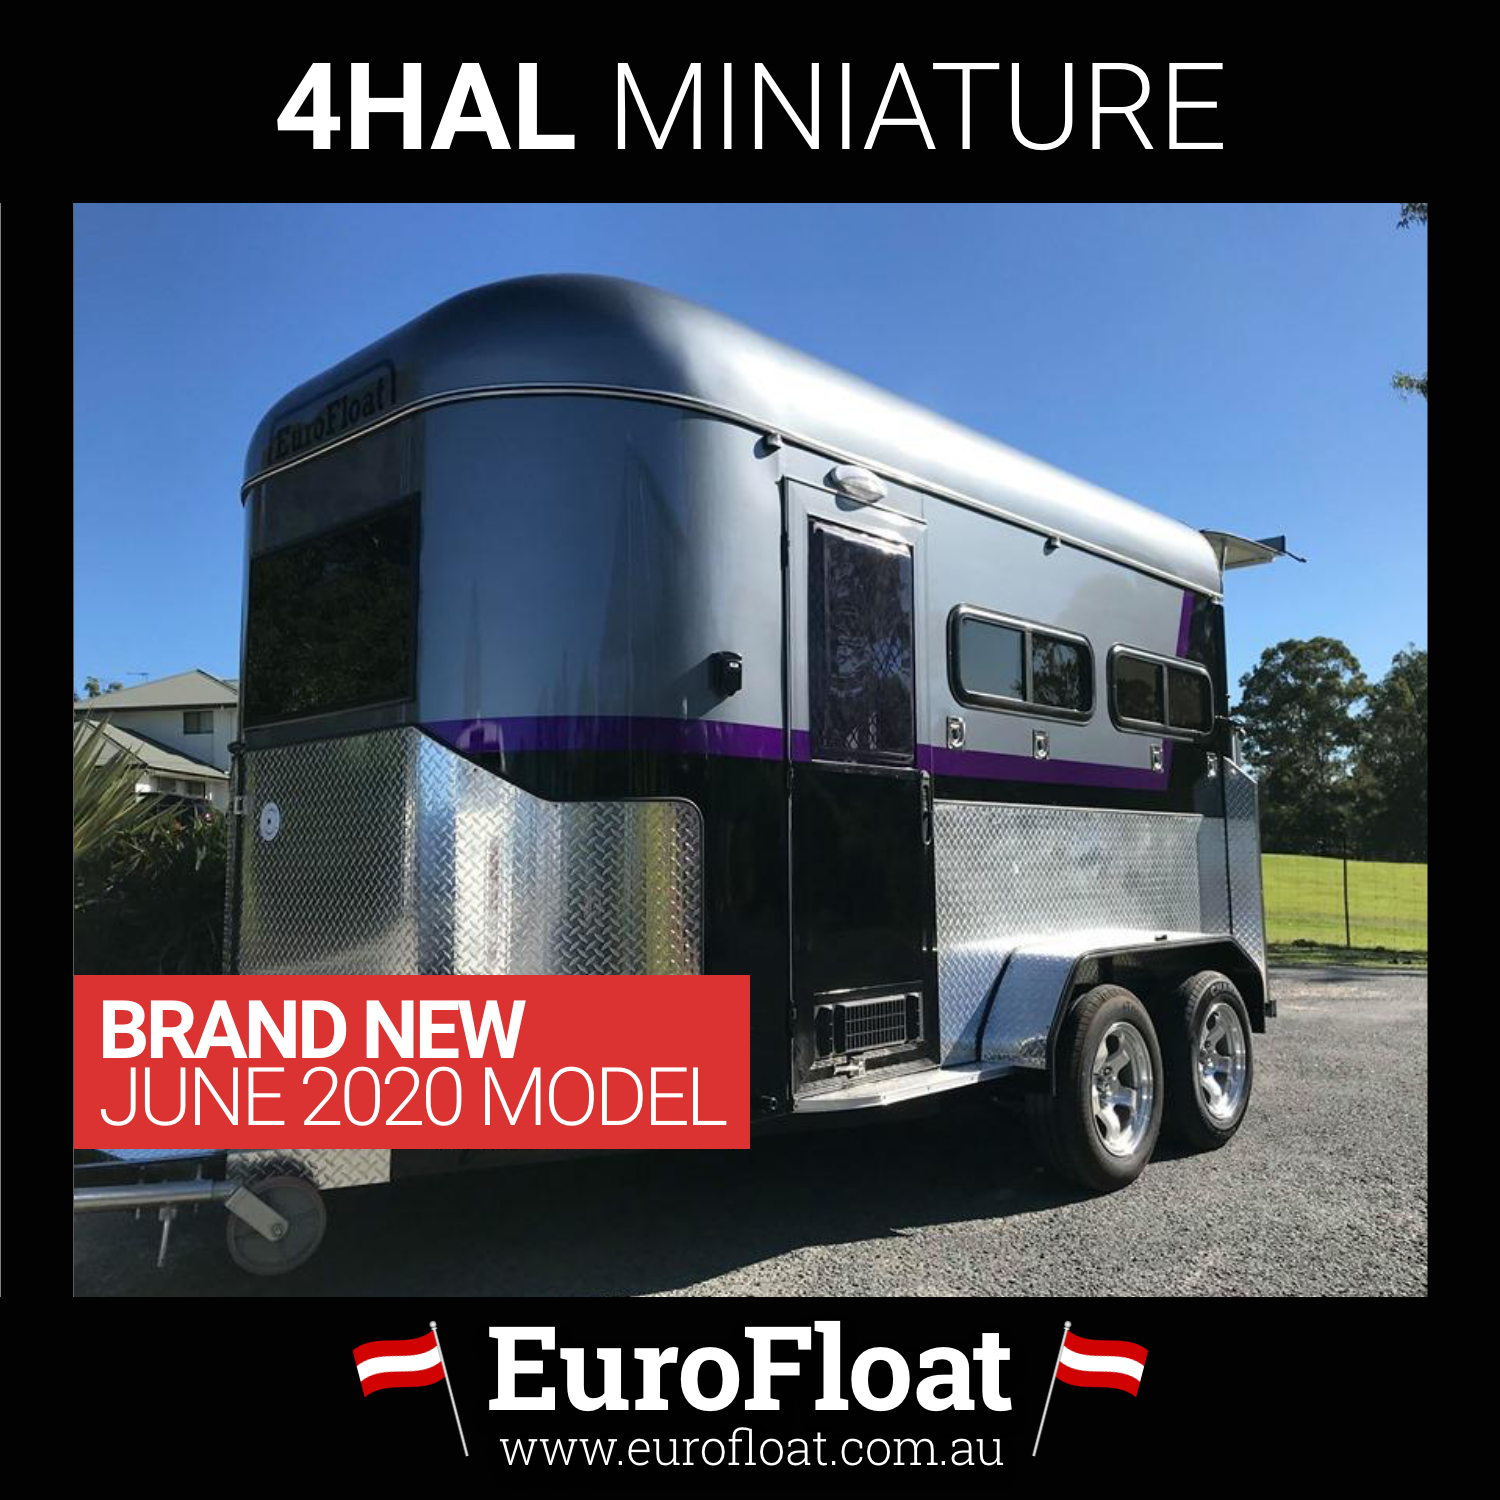 MINIATURE 4 Bay Deluxe NEW Horse Float June 2020 Model